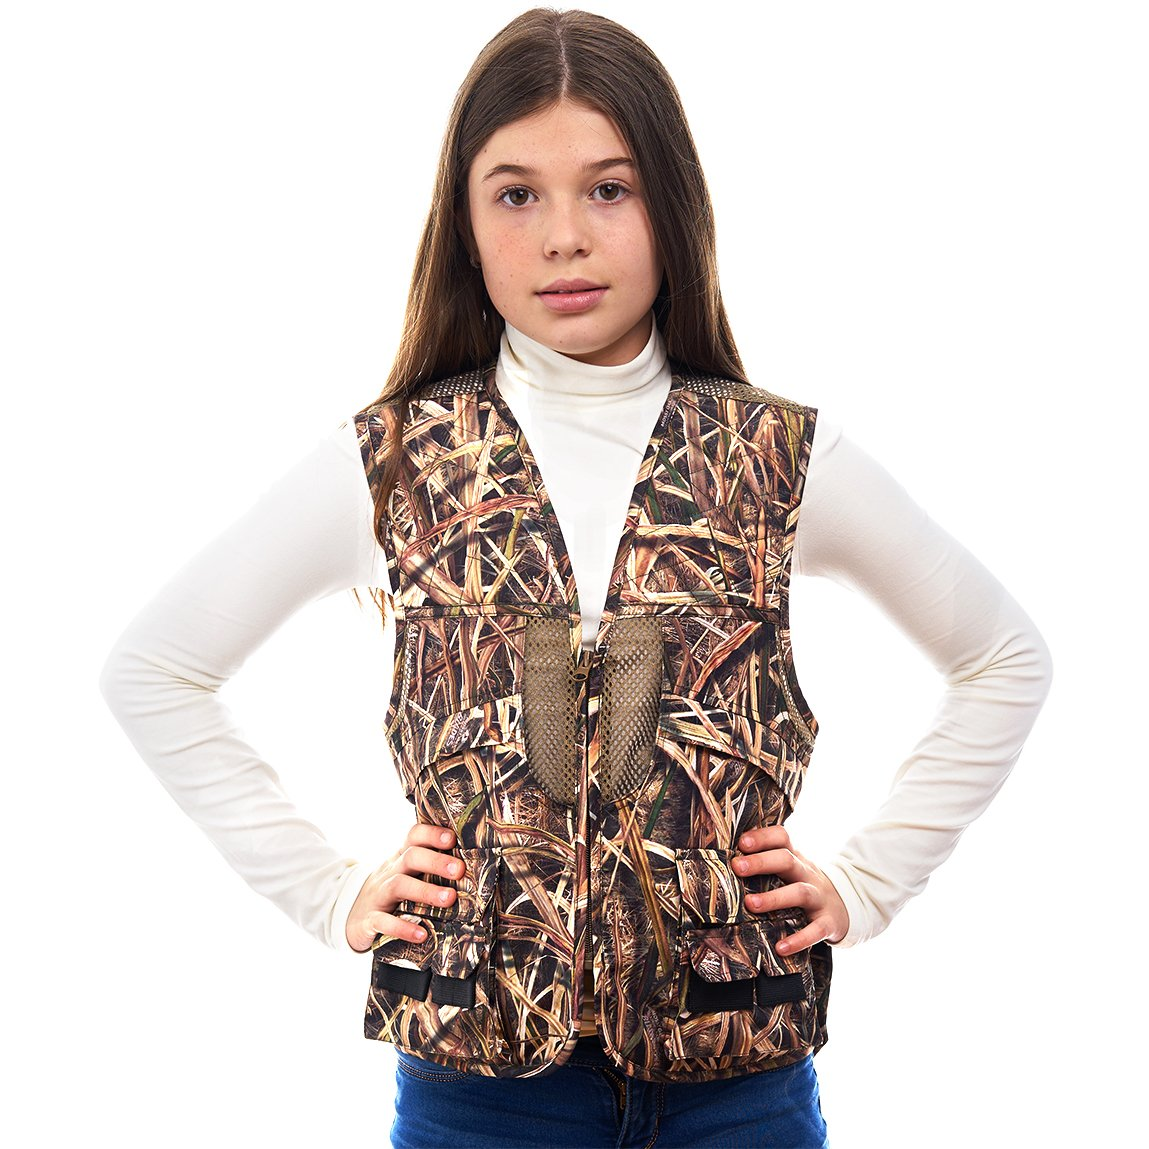 TrailCrest Kids Mossy Oak Deluxe Front Loader Hunting Vest, Medium, Shadow Grass by TrailCrest (Image #2)